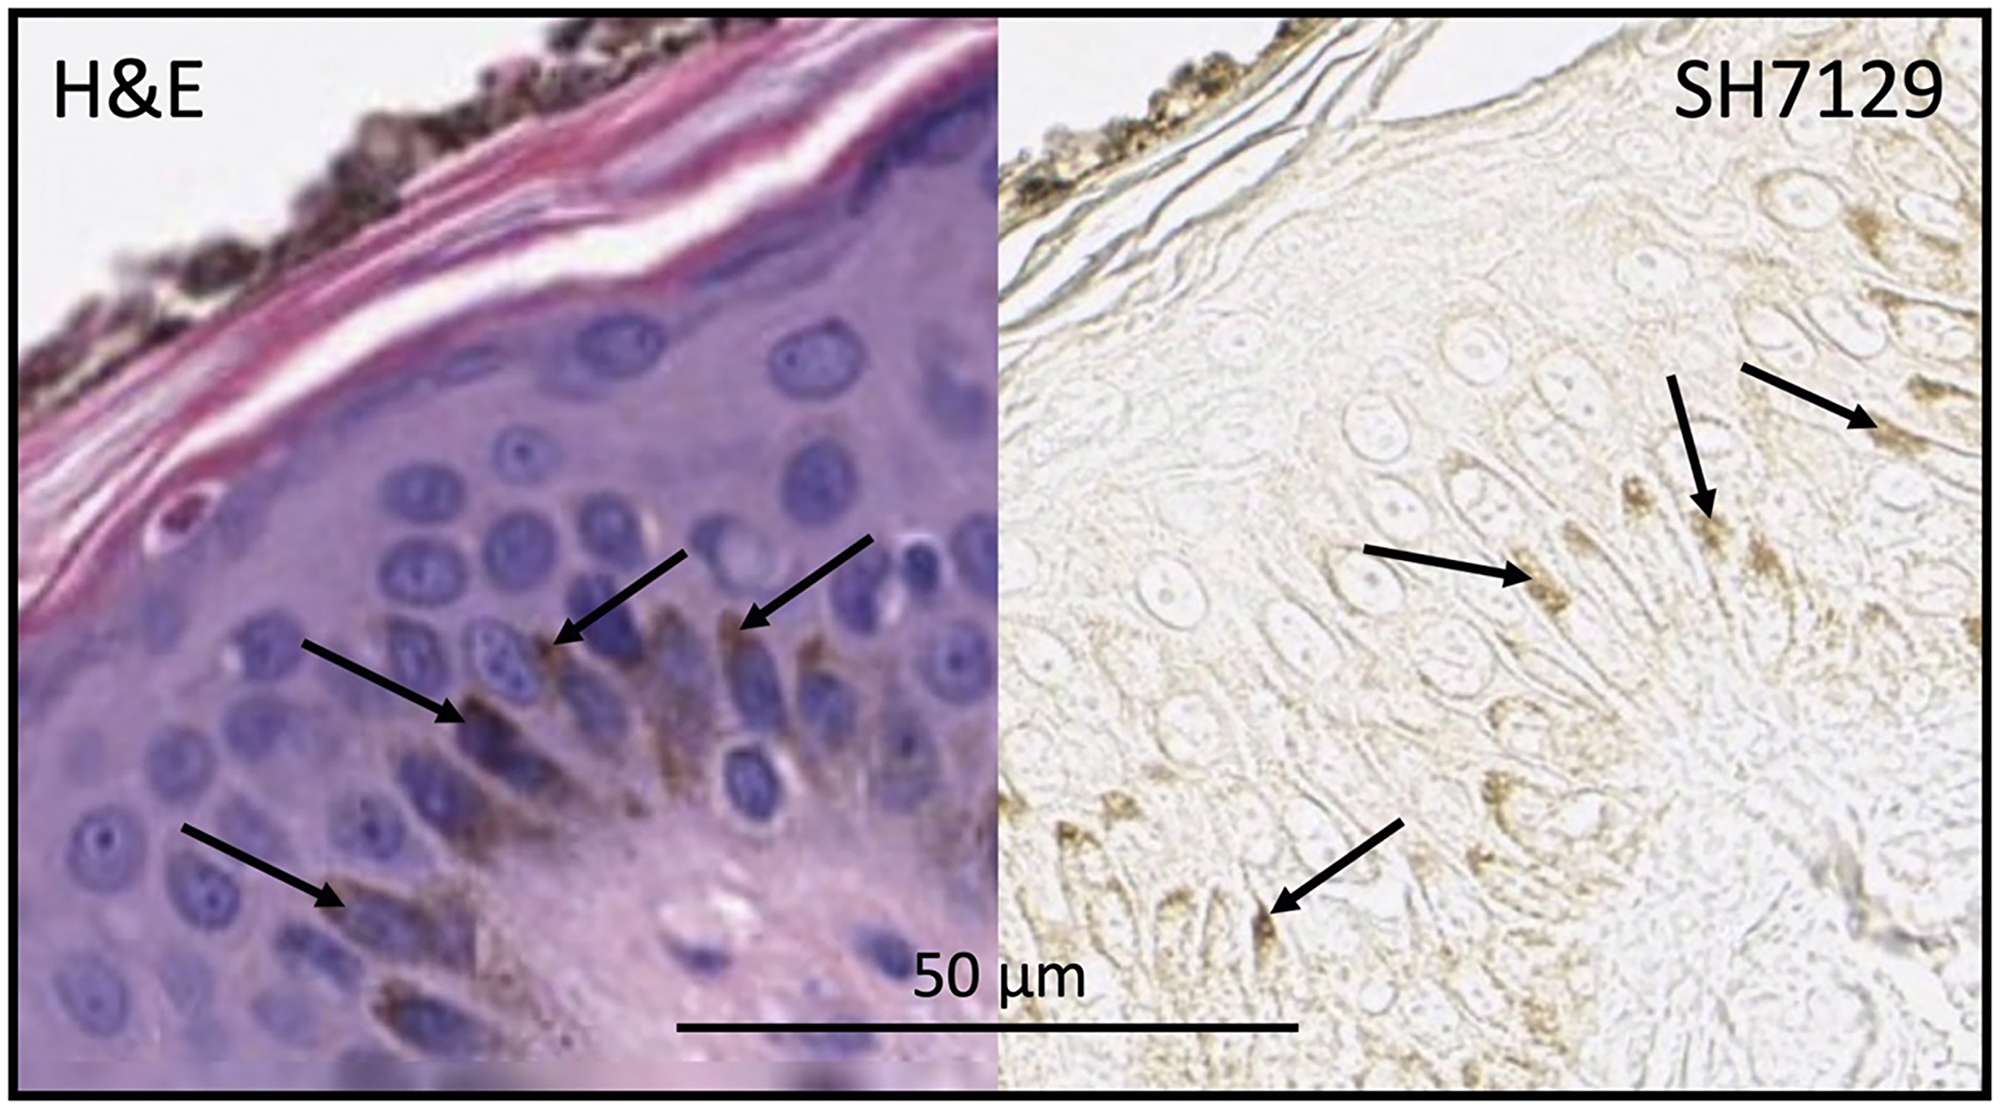 Skin section stained with H&E (without SH7129) or SH7129 (without H&E) showing melanin (arrows) in basal keratinocytes.